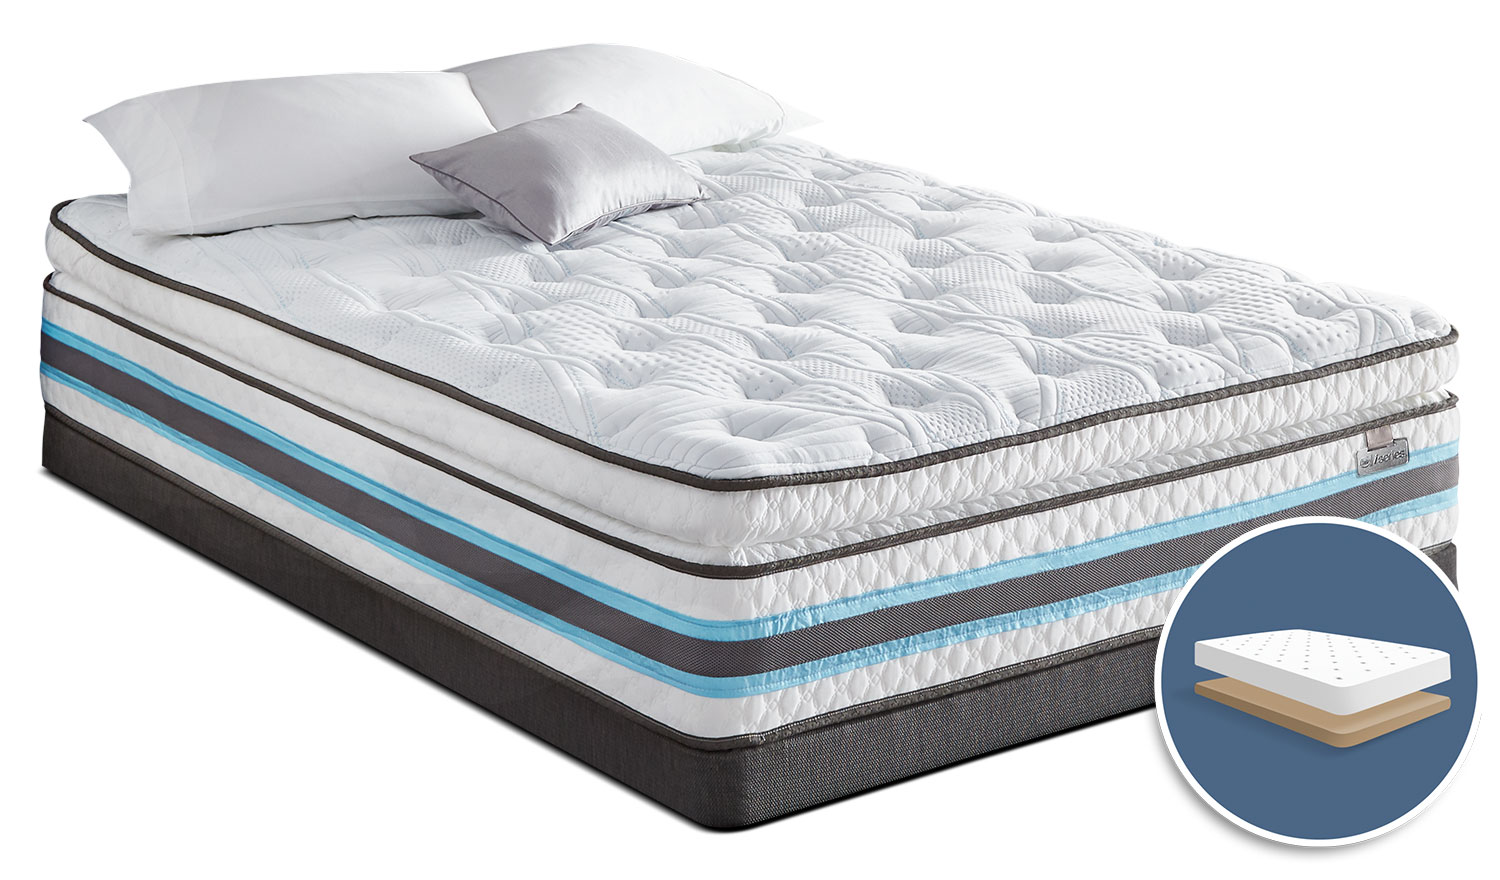 Mattresses and Bedding - Serta iSeries® Insatiable Plush Super Pillow-Top Low-Profile Full Mattress Set